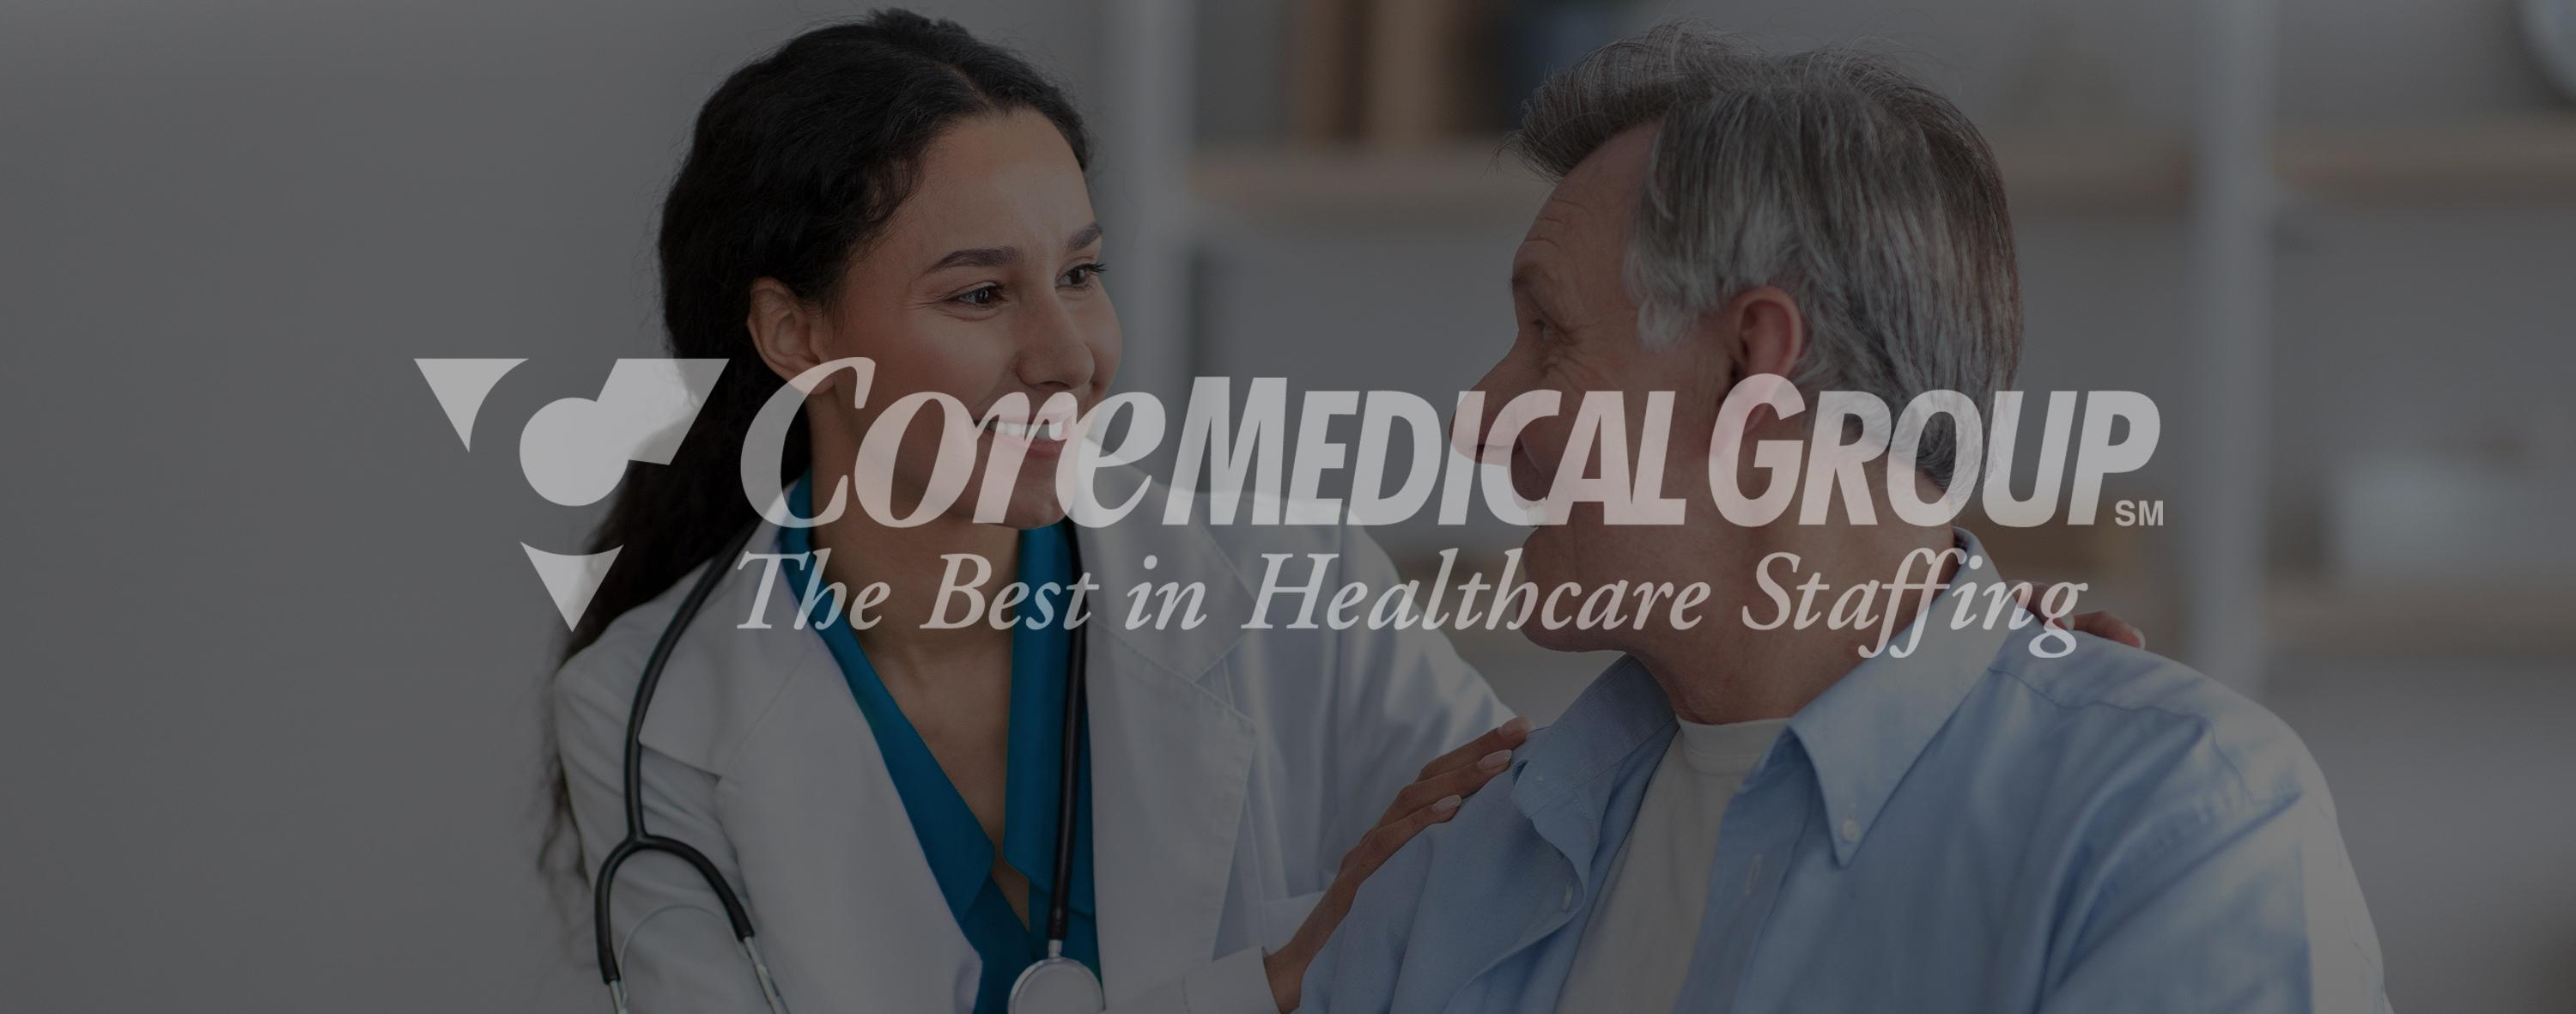 young-woman-doctor-older-man-patient-smiling